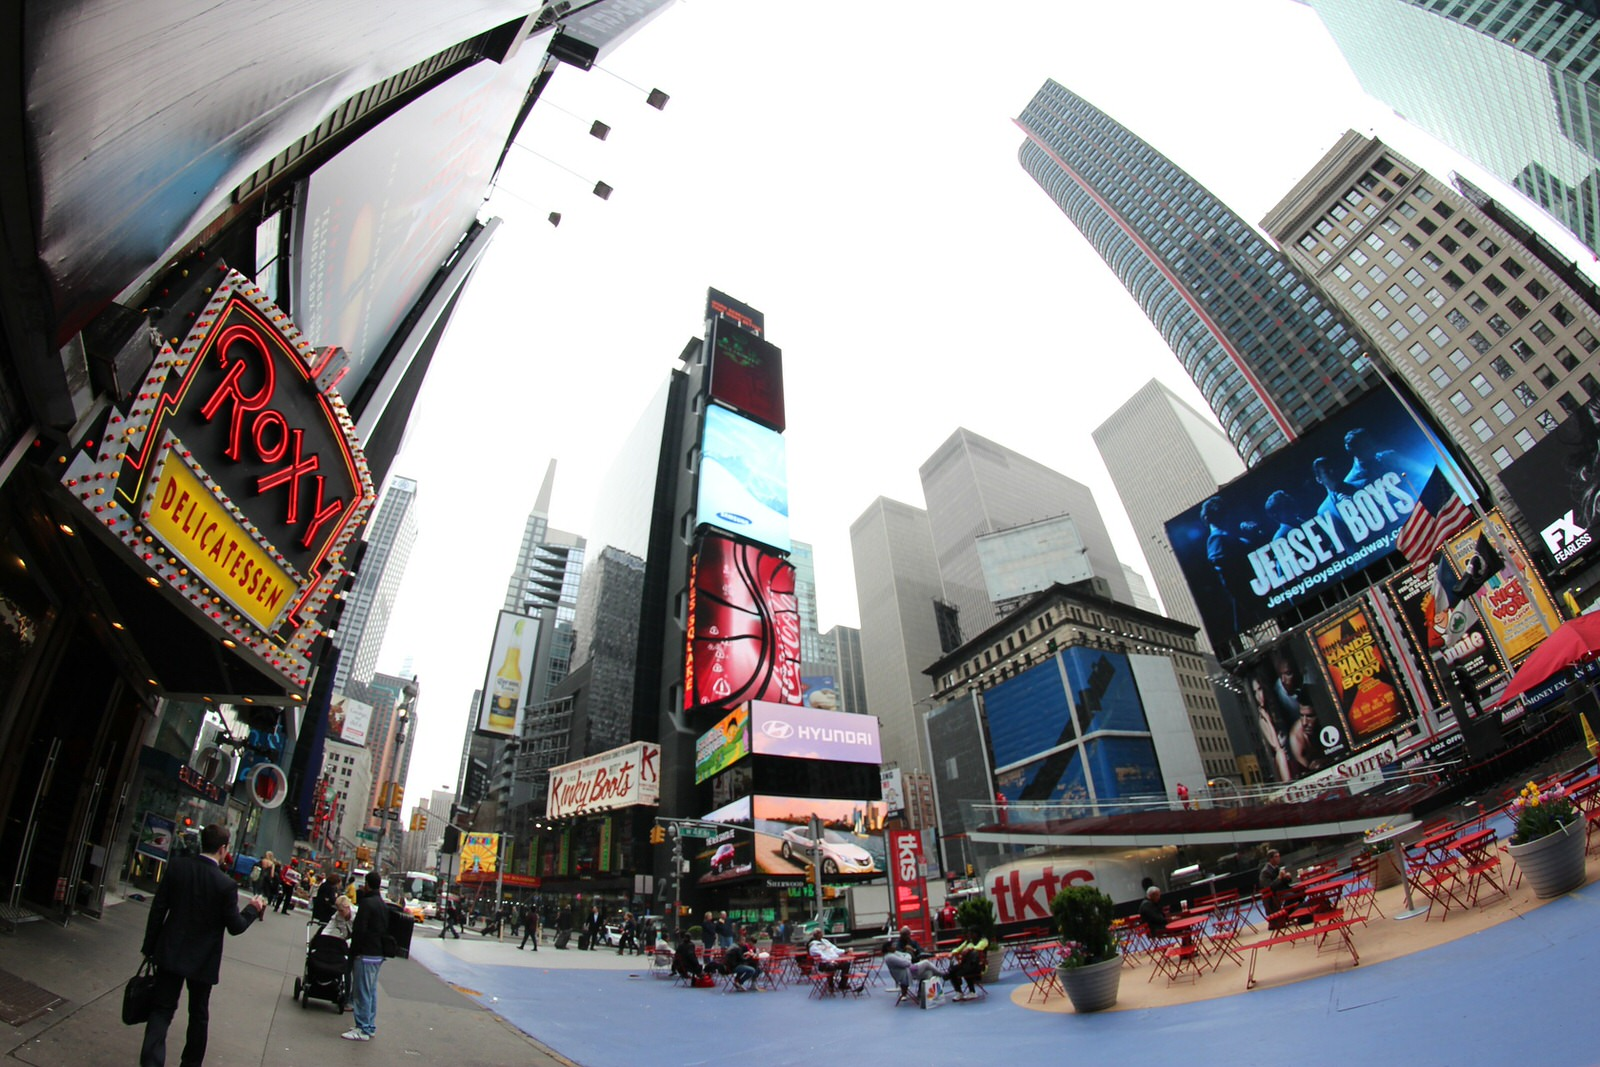 Fisheye Lens Photo